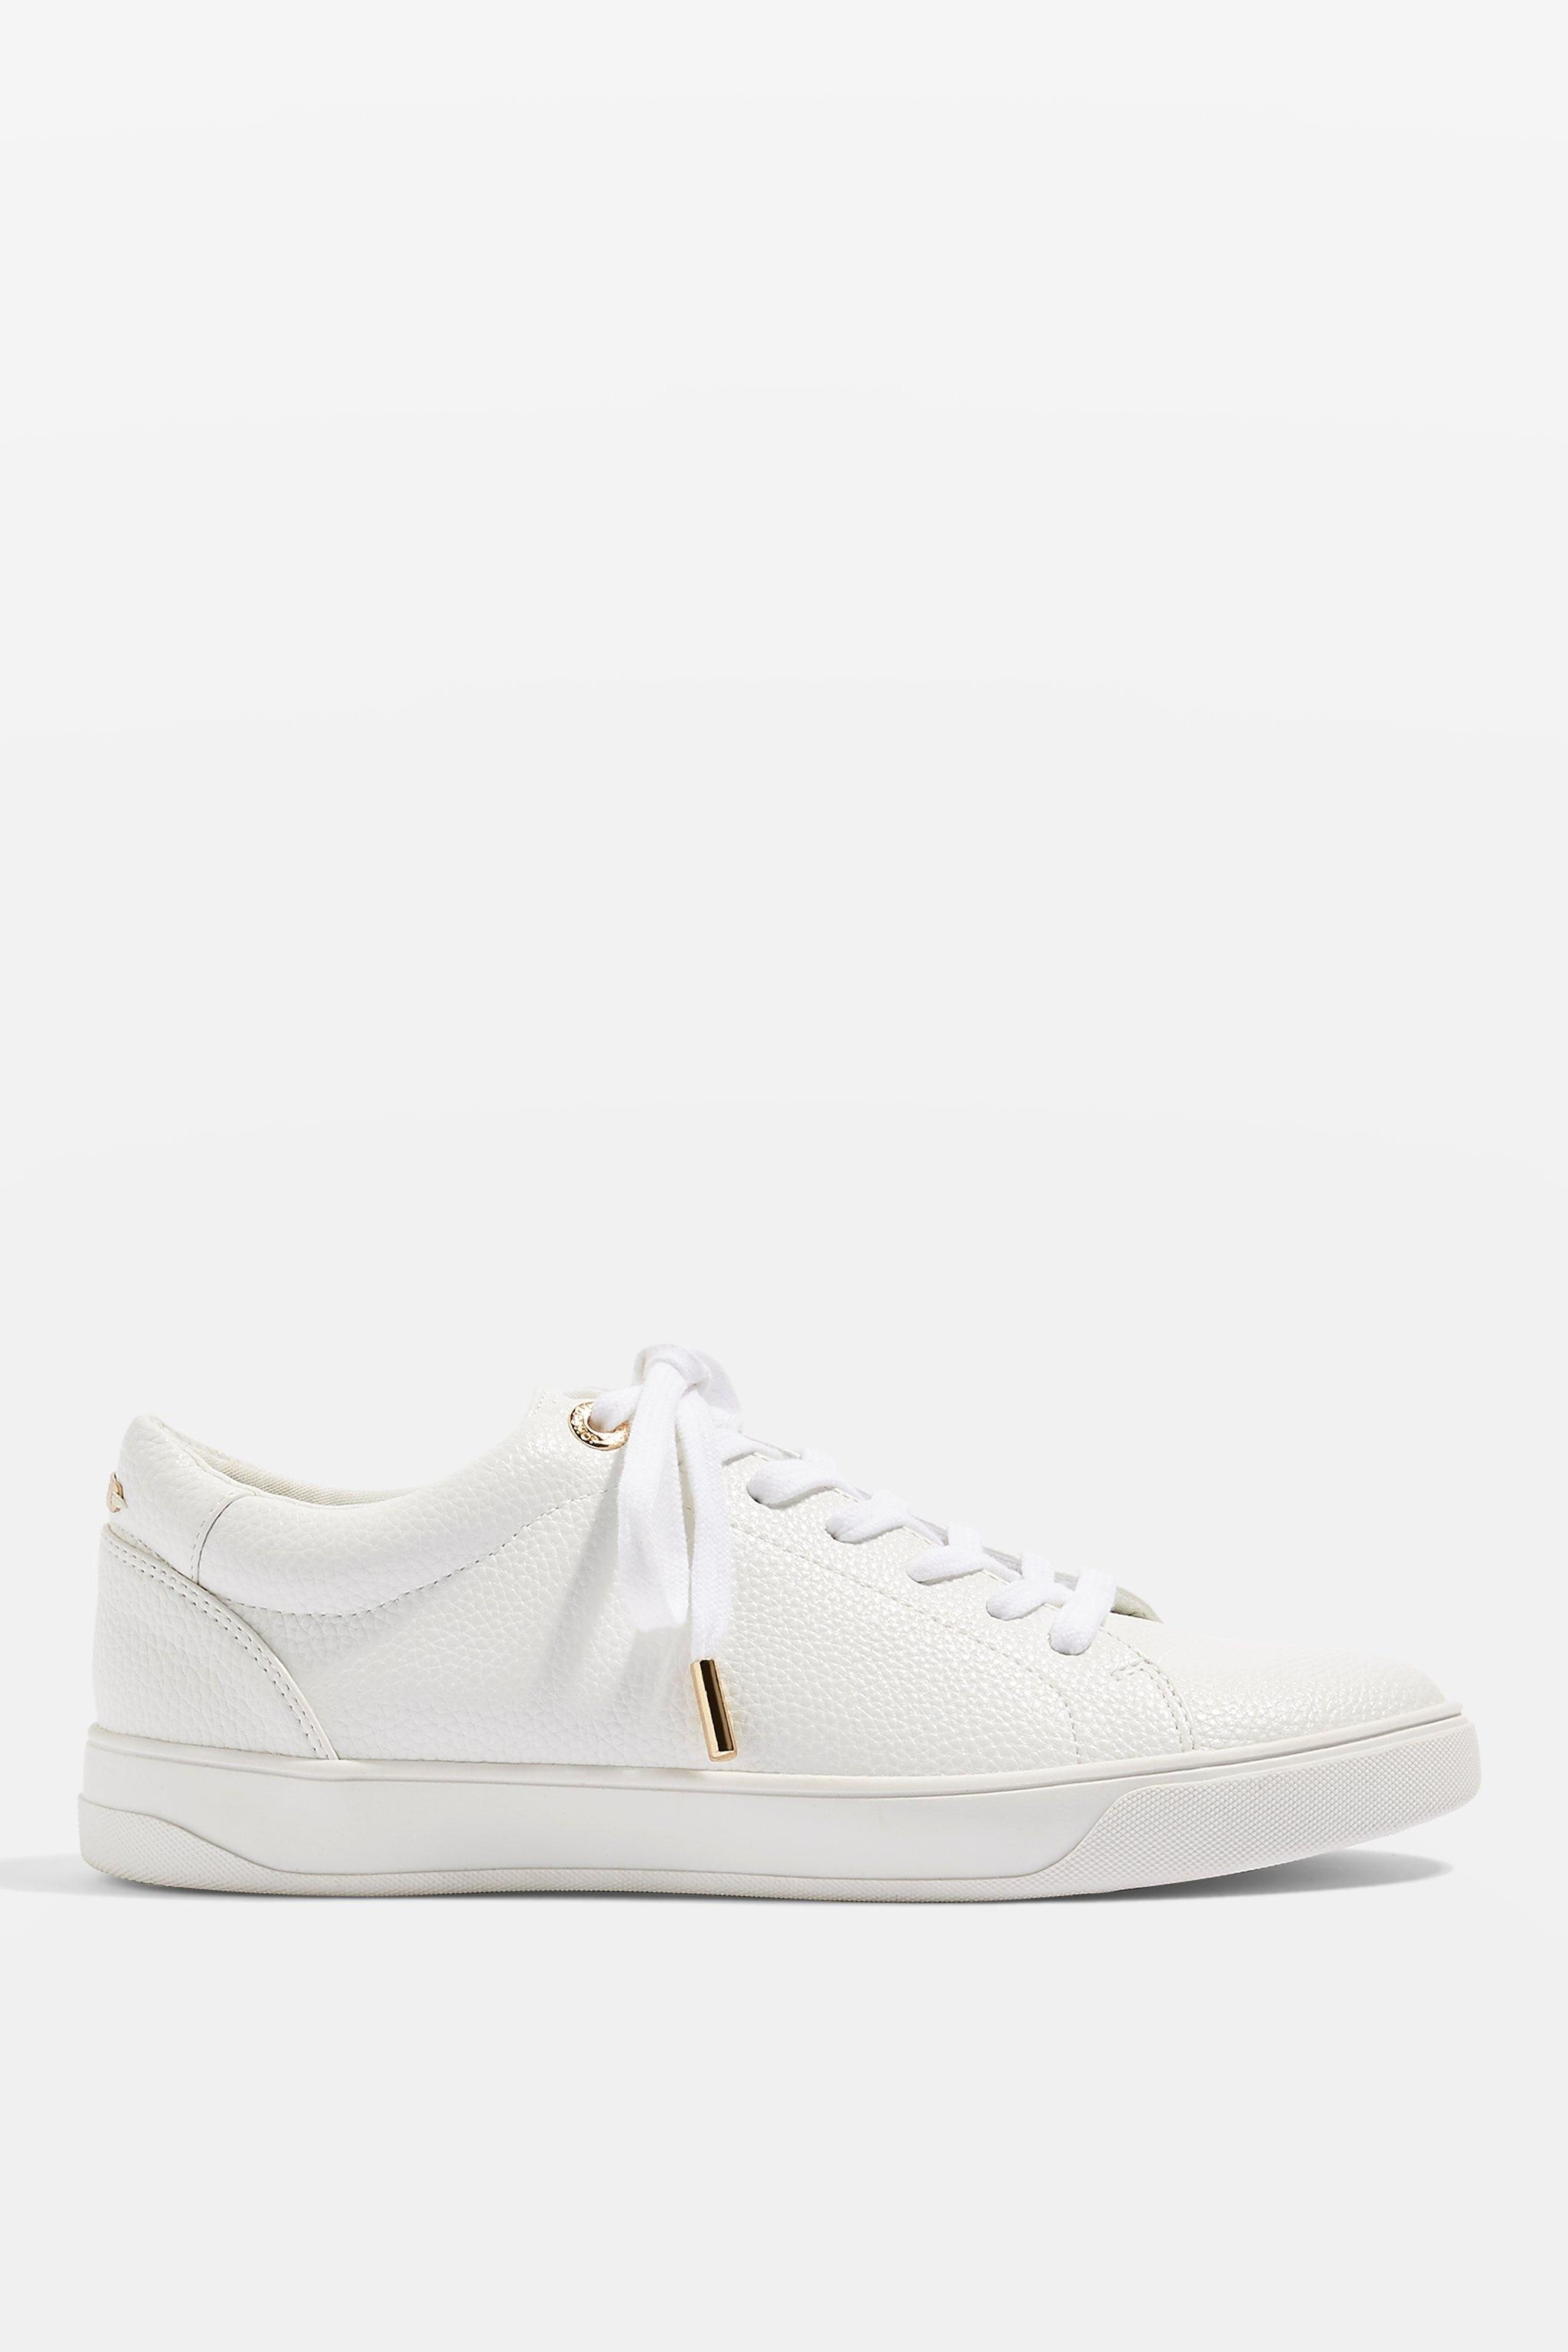 072134e8eb03 TOPSHOP - White Candy Lace Up Trainers - Lyst. View fullscreen